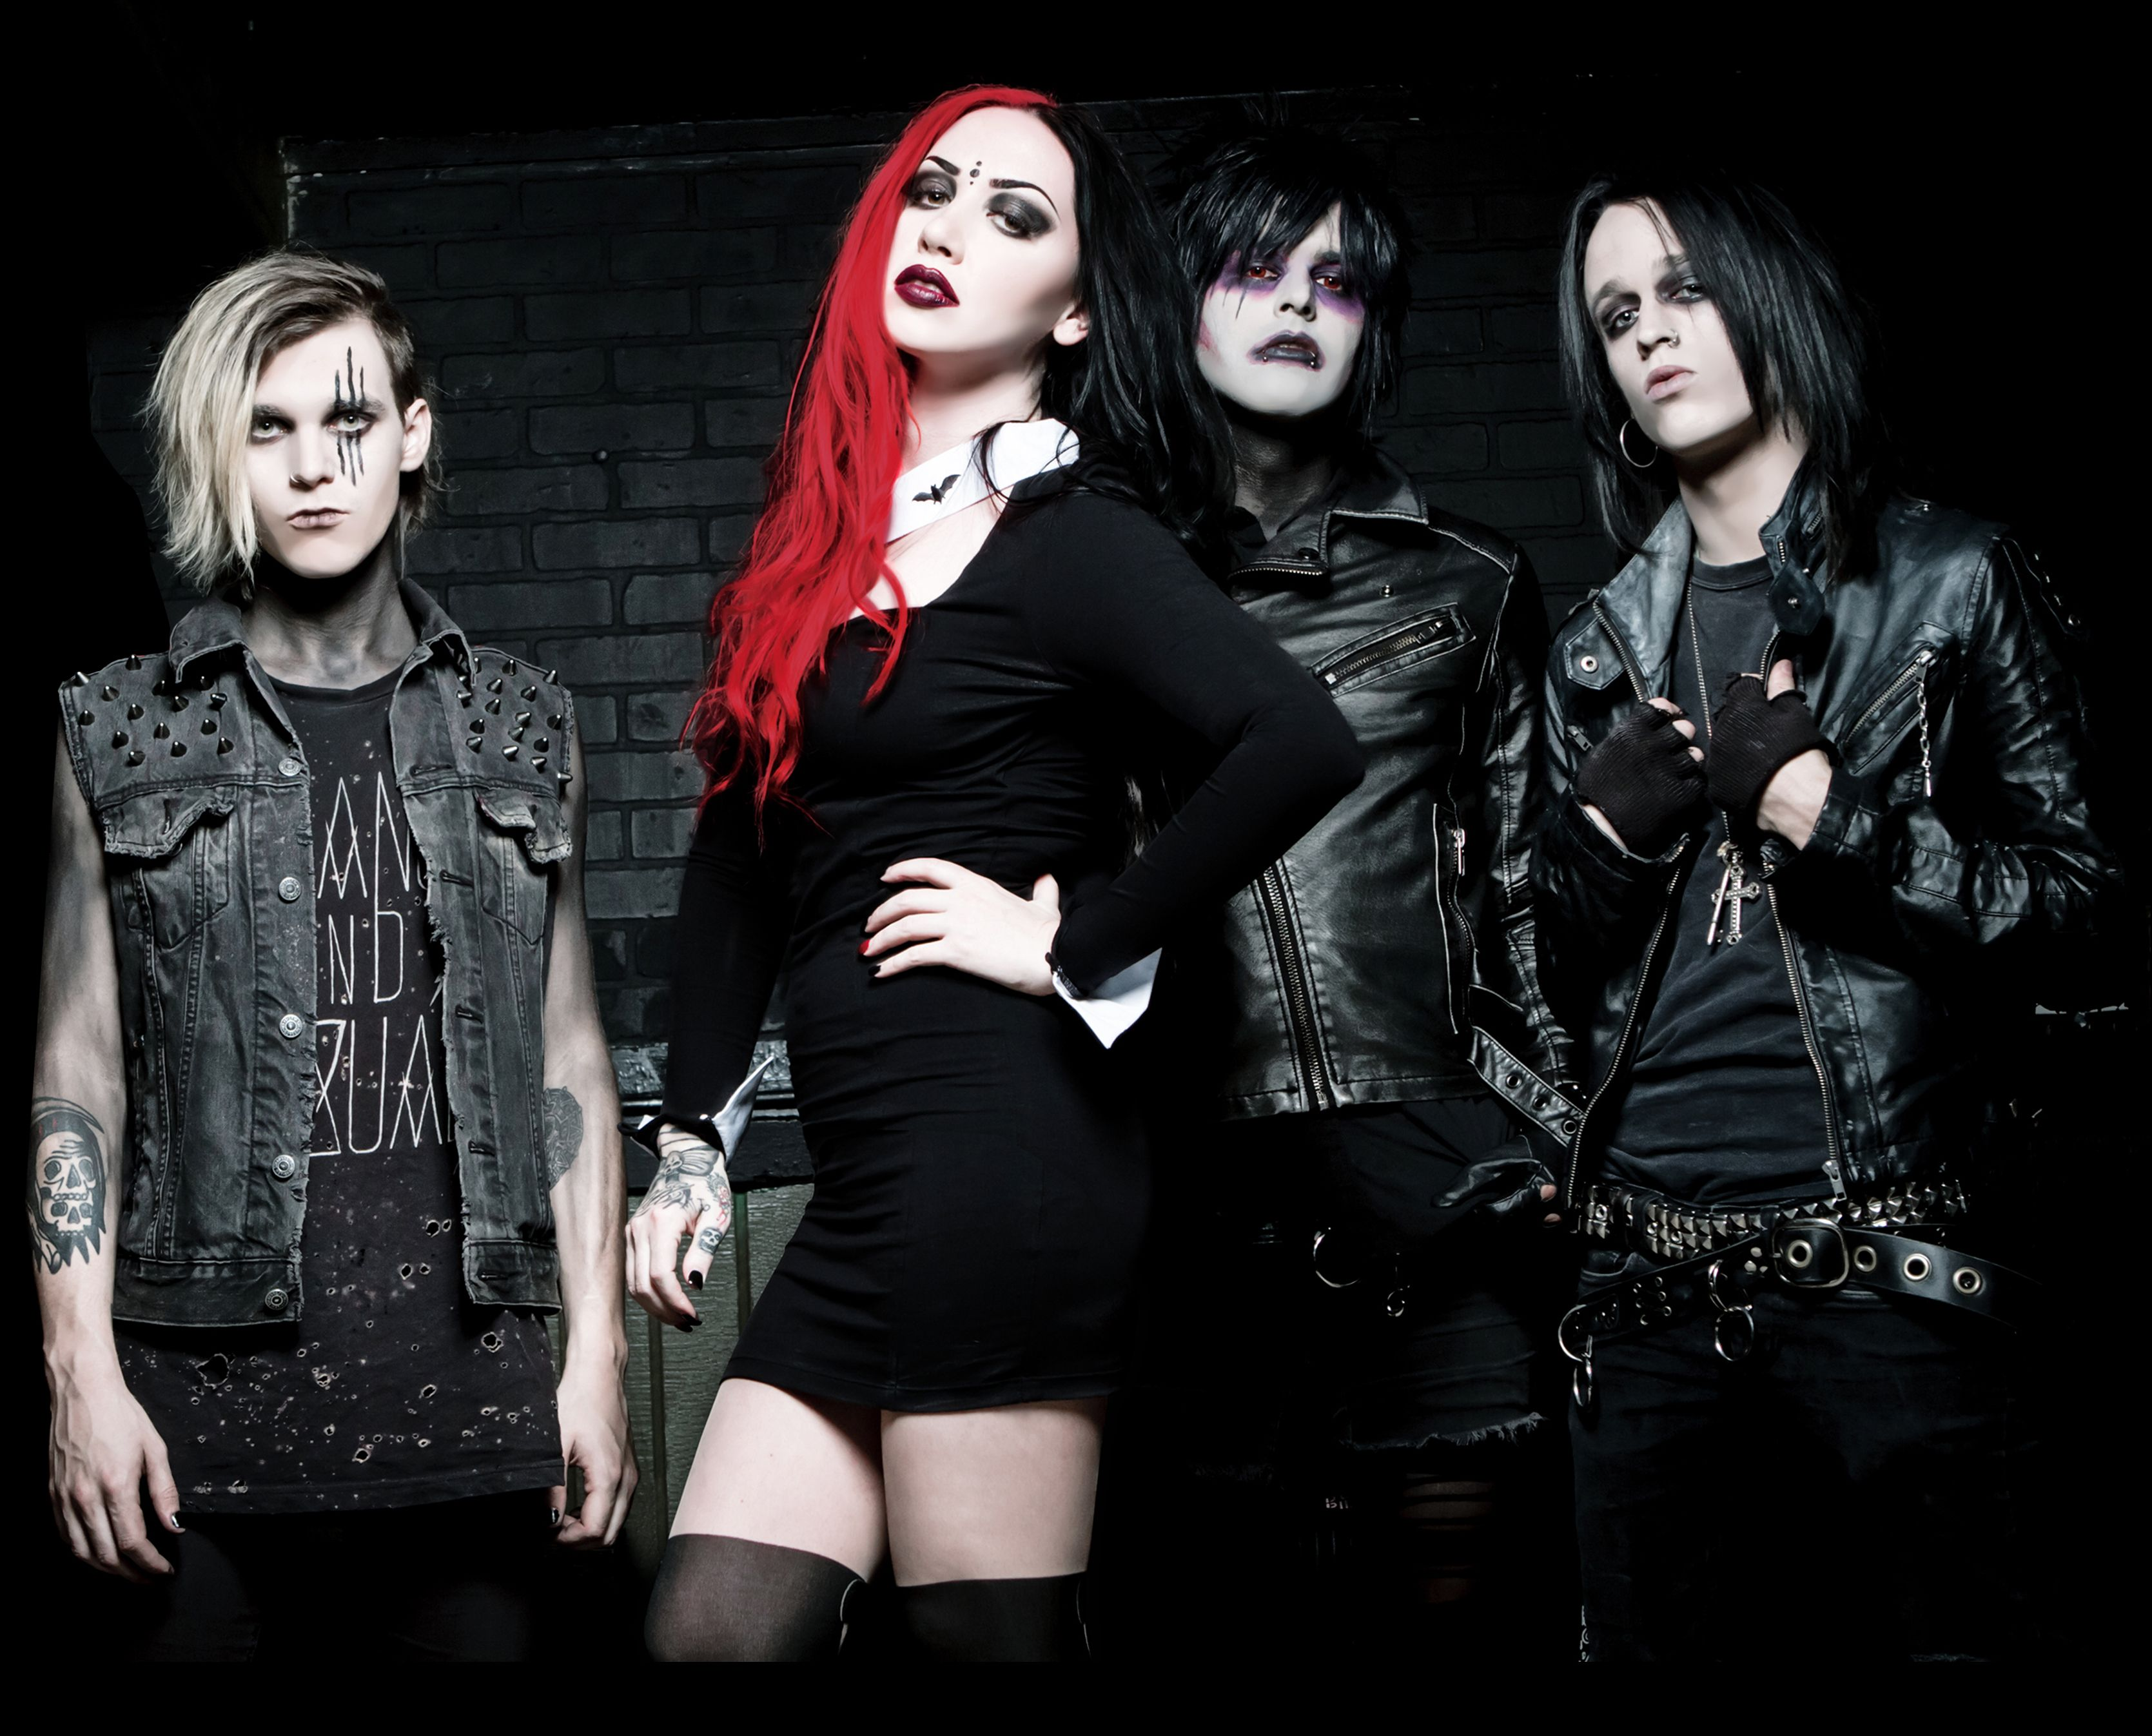 NEW YEARS DAY * GET SCARED * EYES SET TO KILL * THE RELAPSE ...